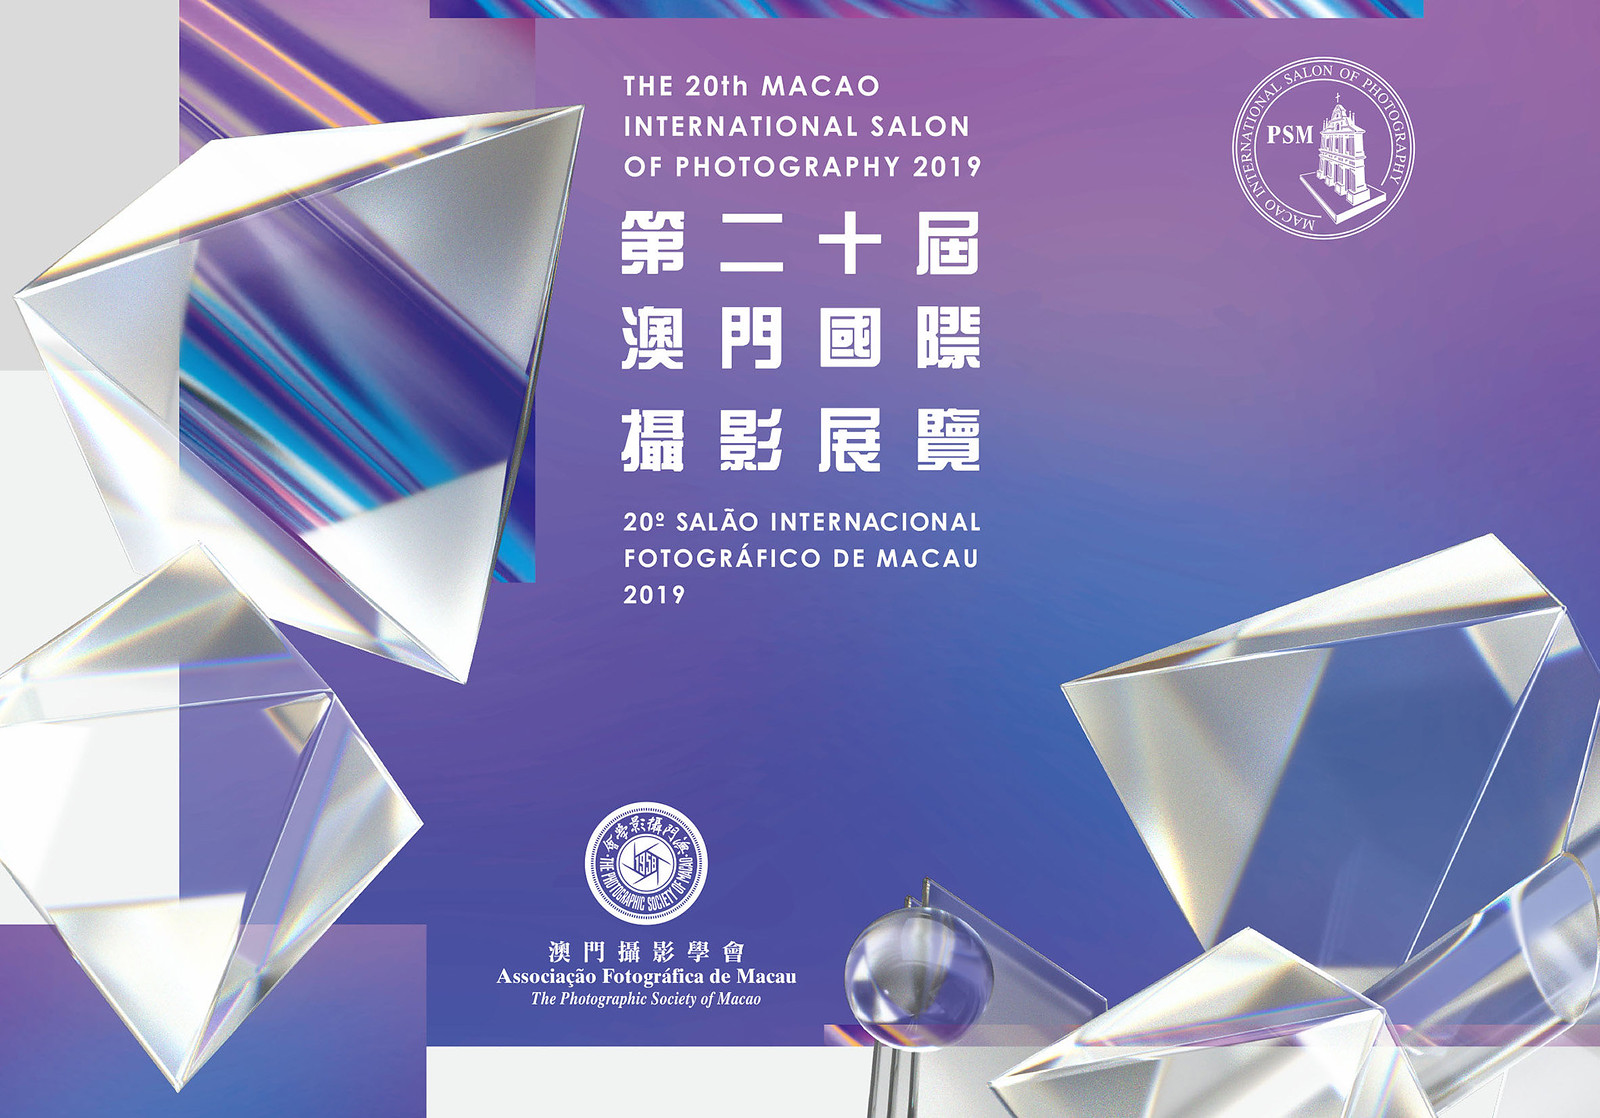 salon2019_invitation_output